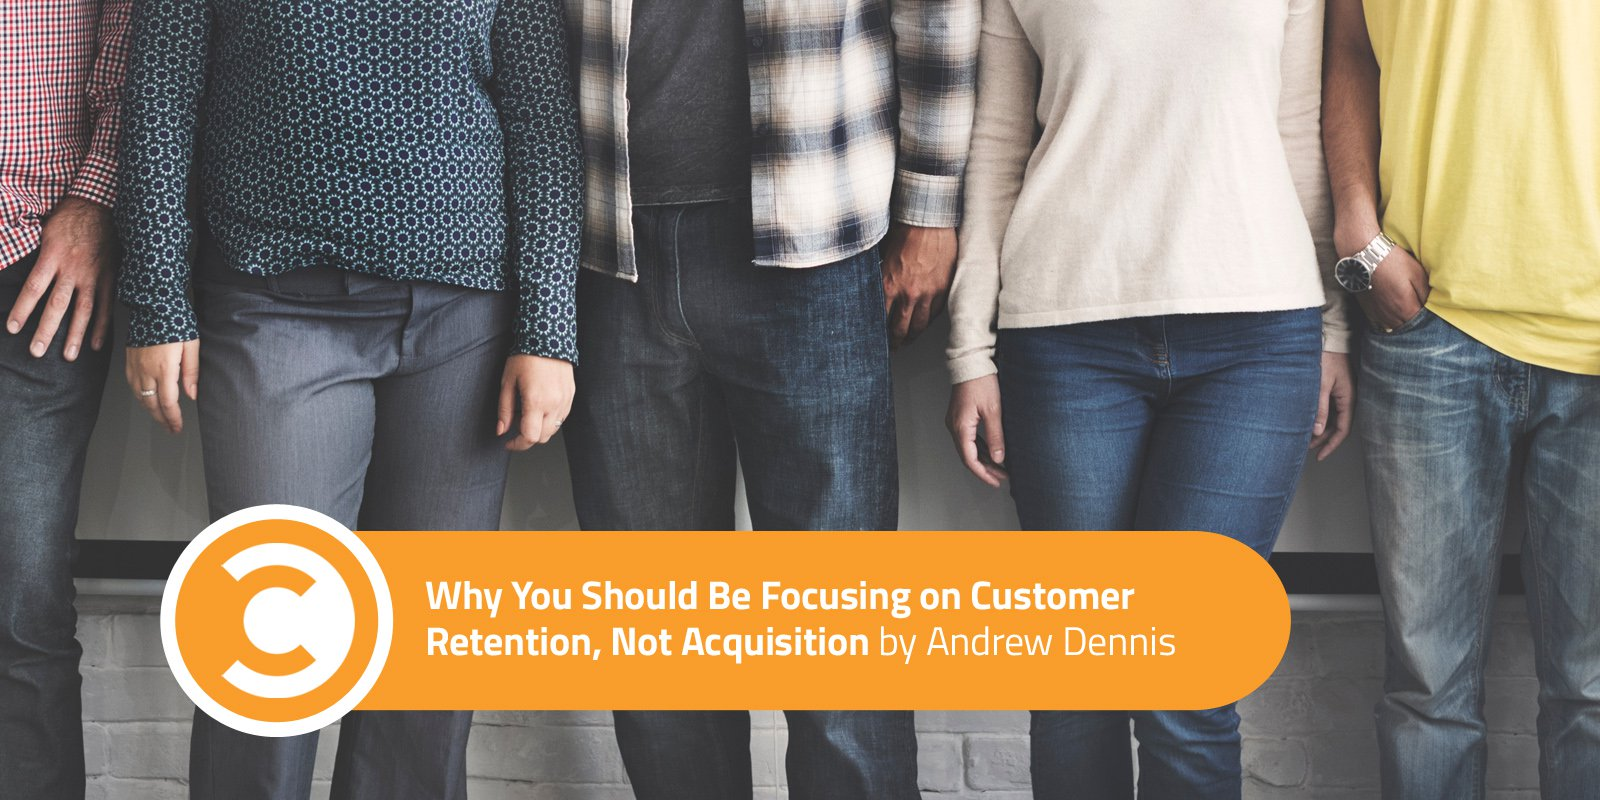 Why-You-Should-Be-Focusing-on-Customer-Retention-Not-Acquisition.jpg